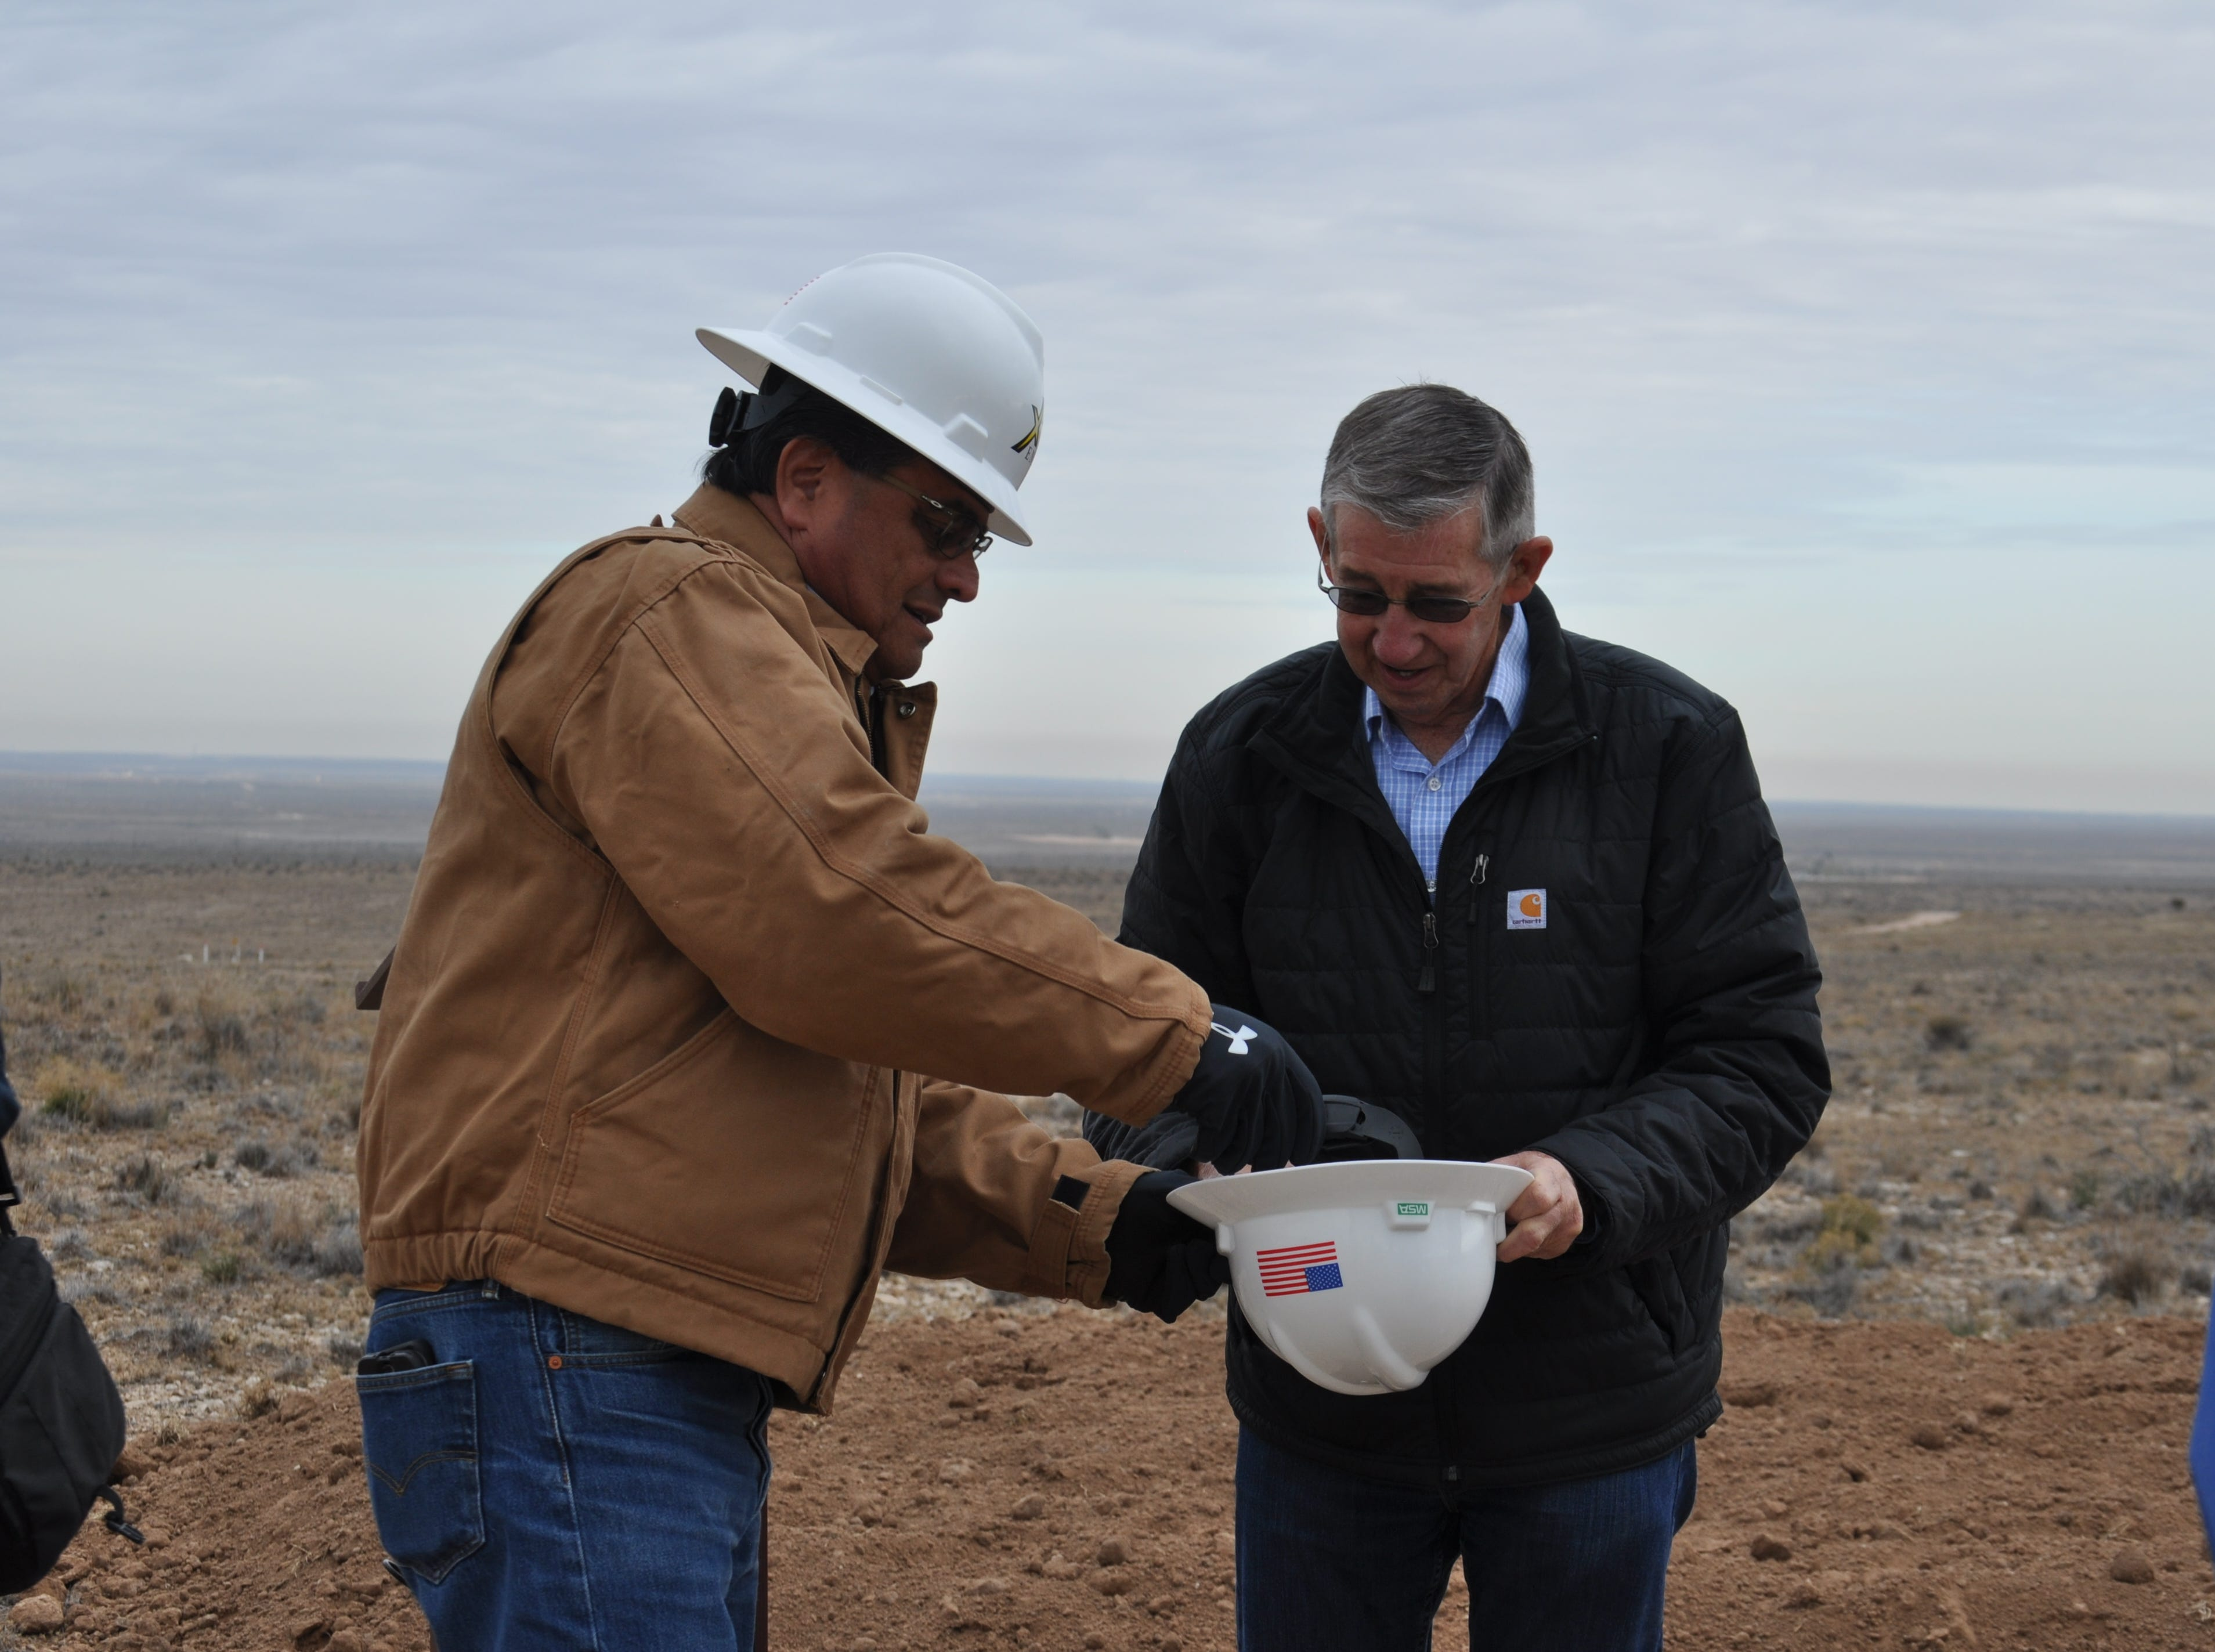 Carlsbad Mayor Pro Tem Eddie Rodriguez and Carlsbad Mayor Dale Janway Dec. 17 at the site of the Double Eagle water project in Carlsbad, New Mexico.